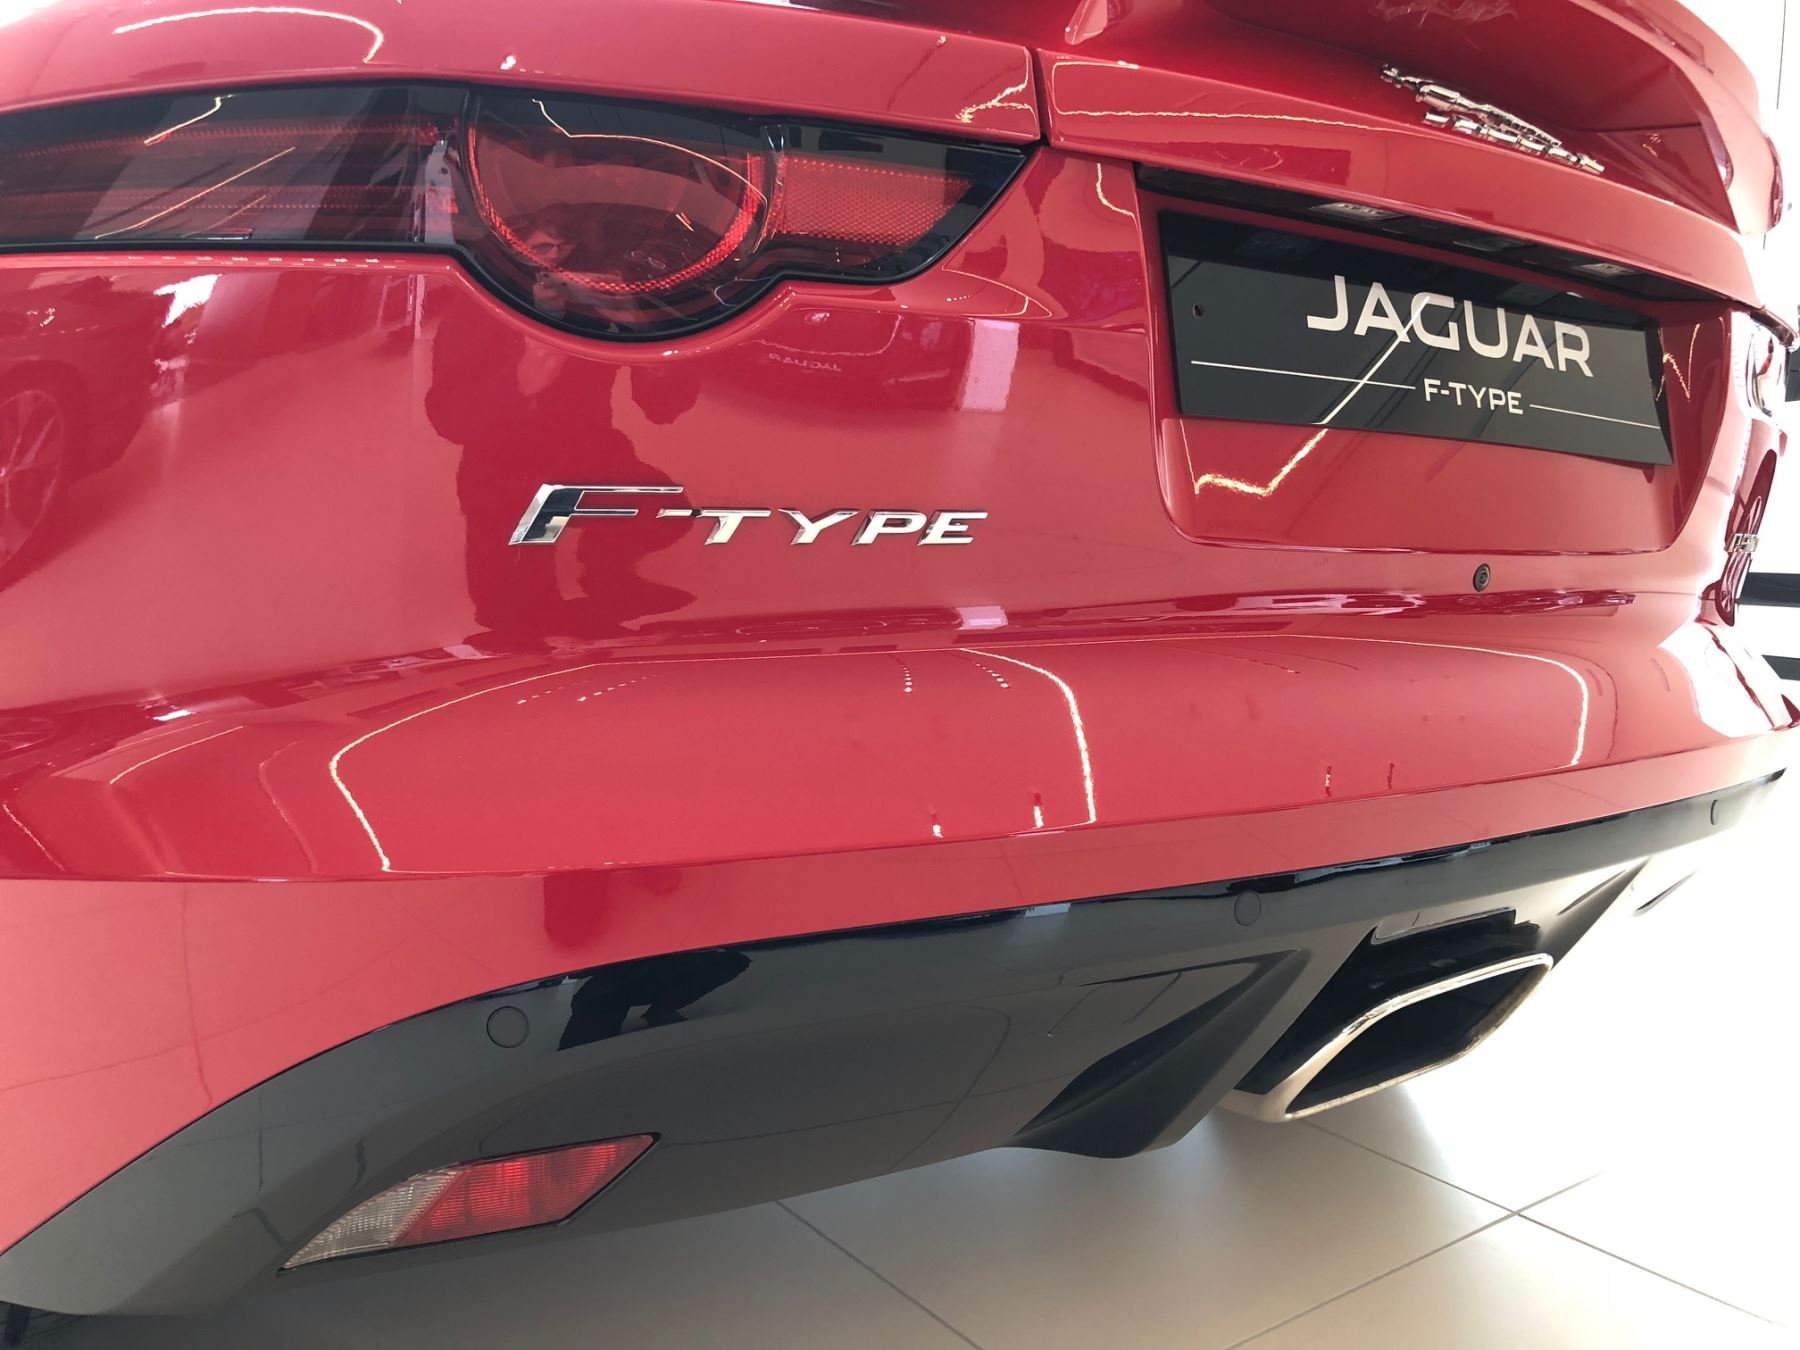 Jaguar F-TYPE 2.0 T/C Petrol RWD Coupe 300PS image 8